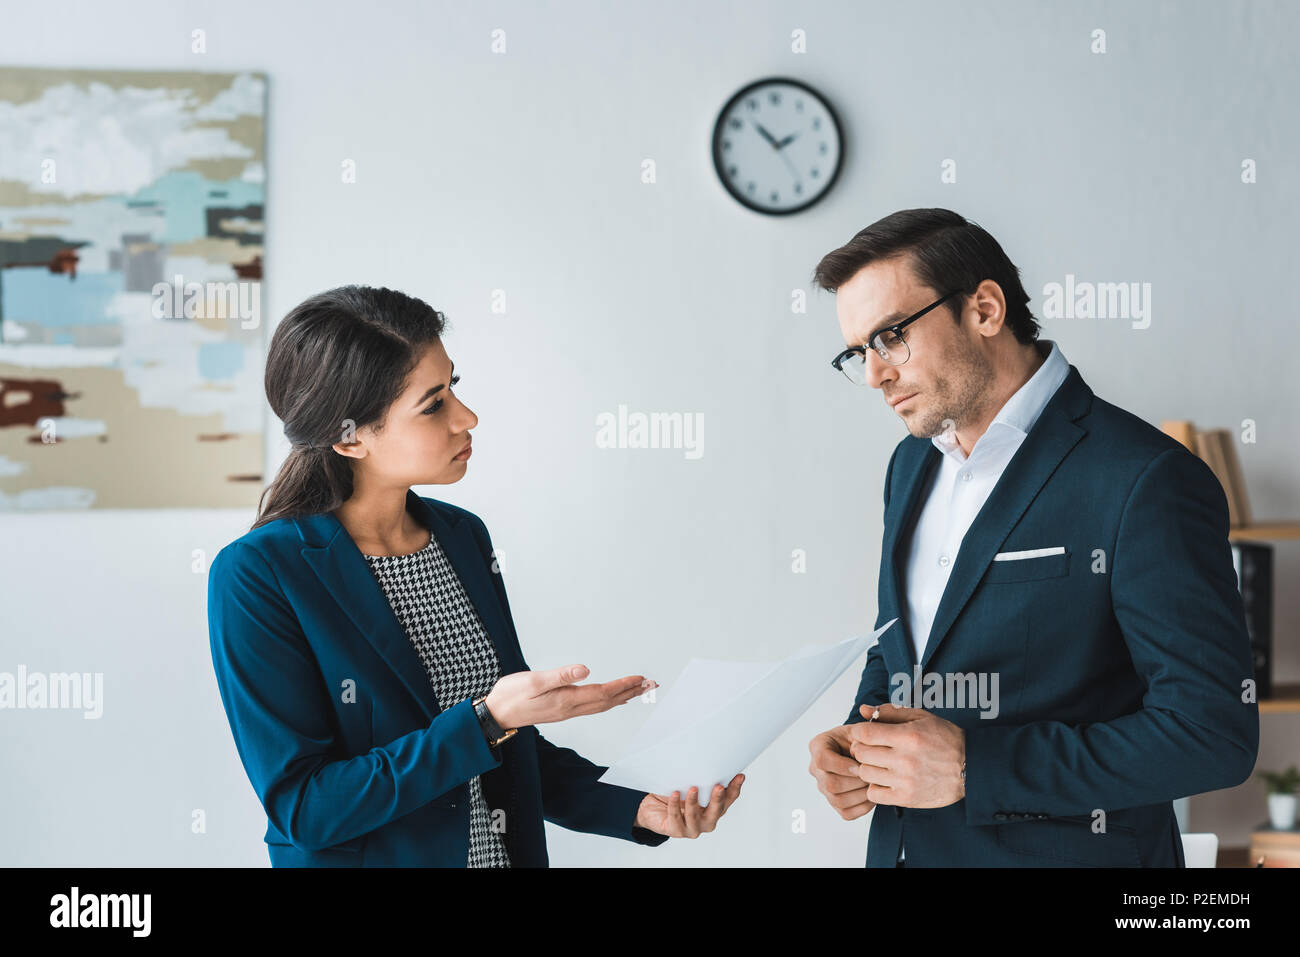 Colleagues in business suits arguing about contract details in modern office - Stock Image